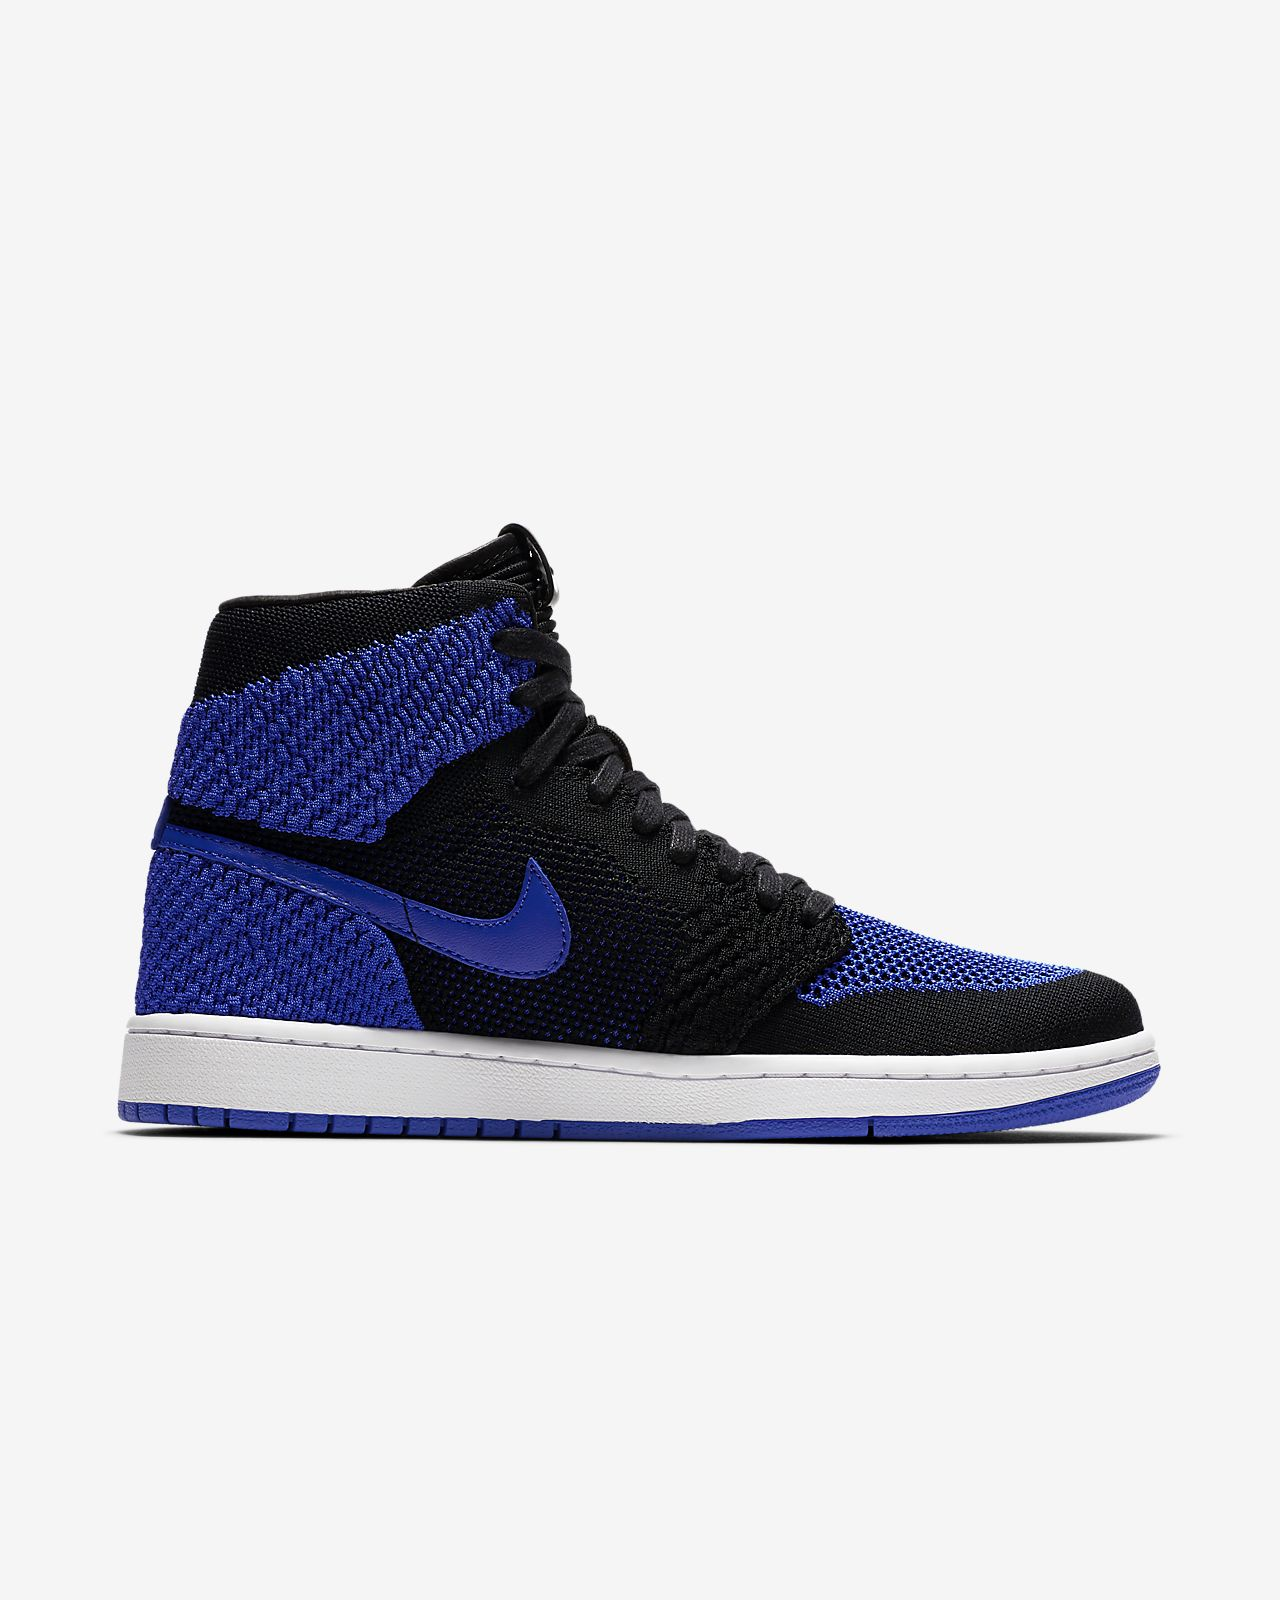 a7b1006729ba6d Air Jordan 1 Retro High Flyknit Men s Shoe. Nike.com ZA